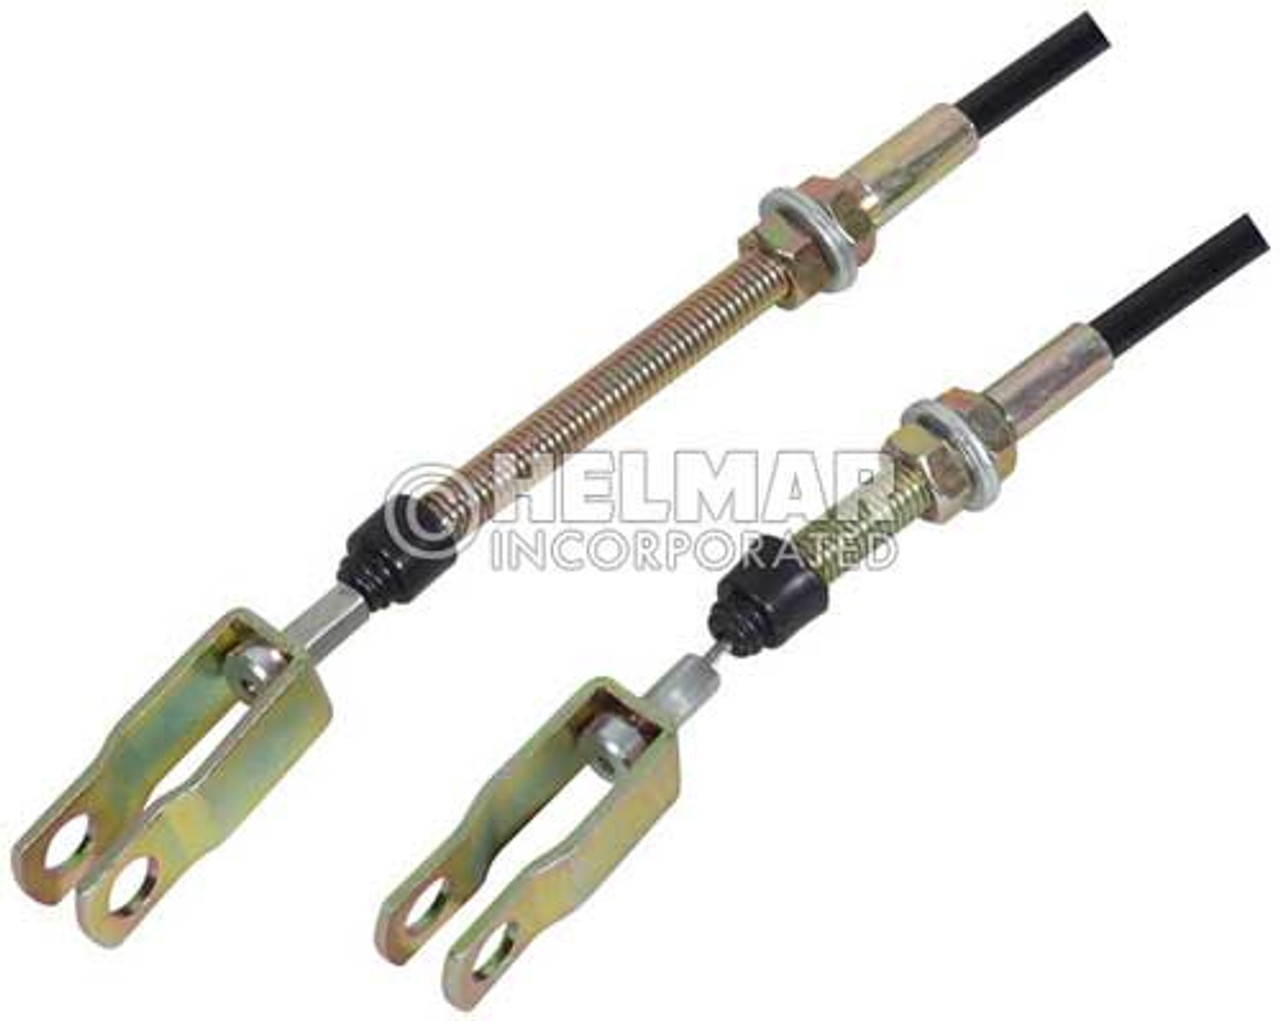 """5800230-12 Yale Accelerator Cable 35-1/4"""" Long"""